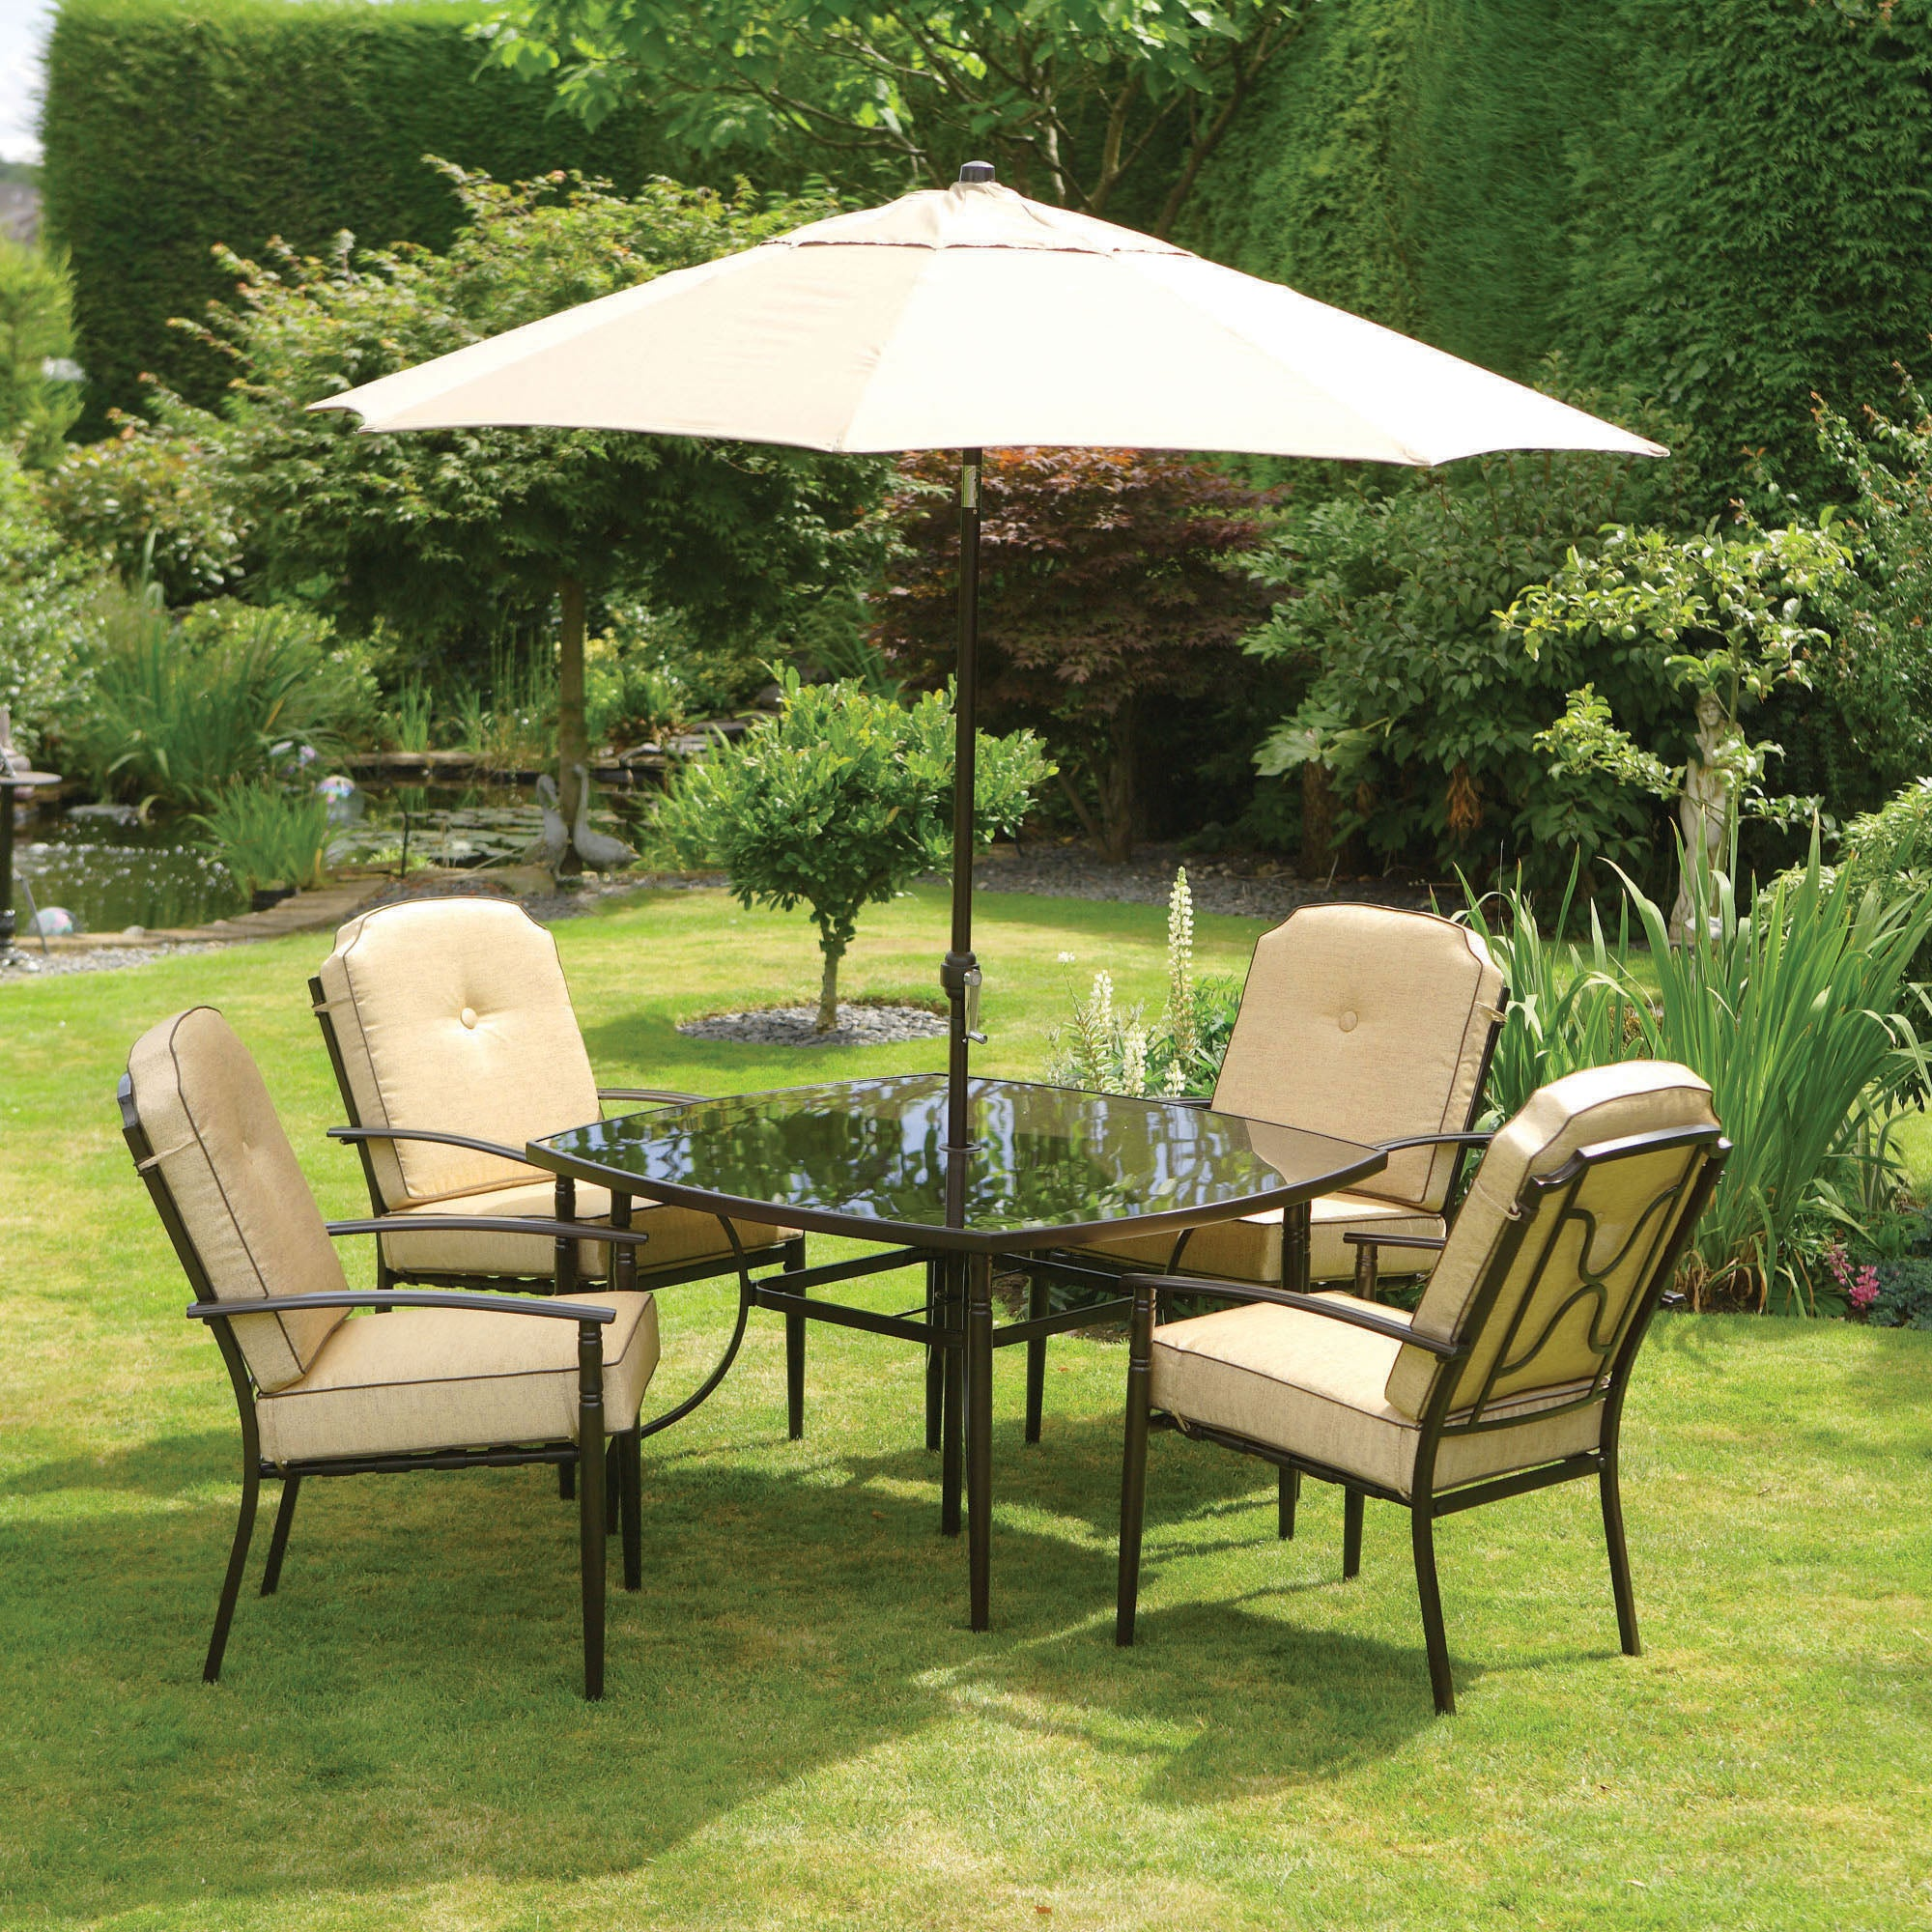 Hamilton 4 Seater Garden Dining Furniture with Parasol